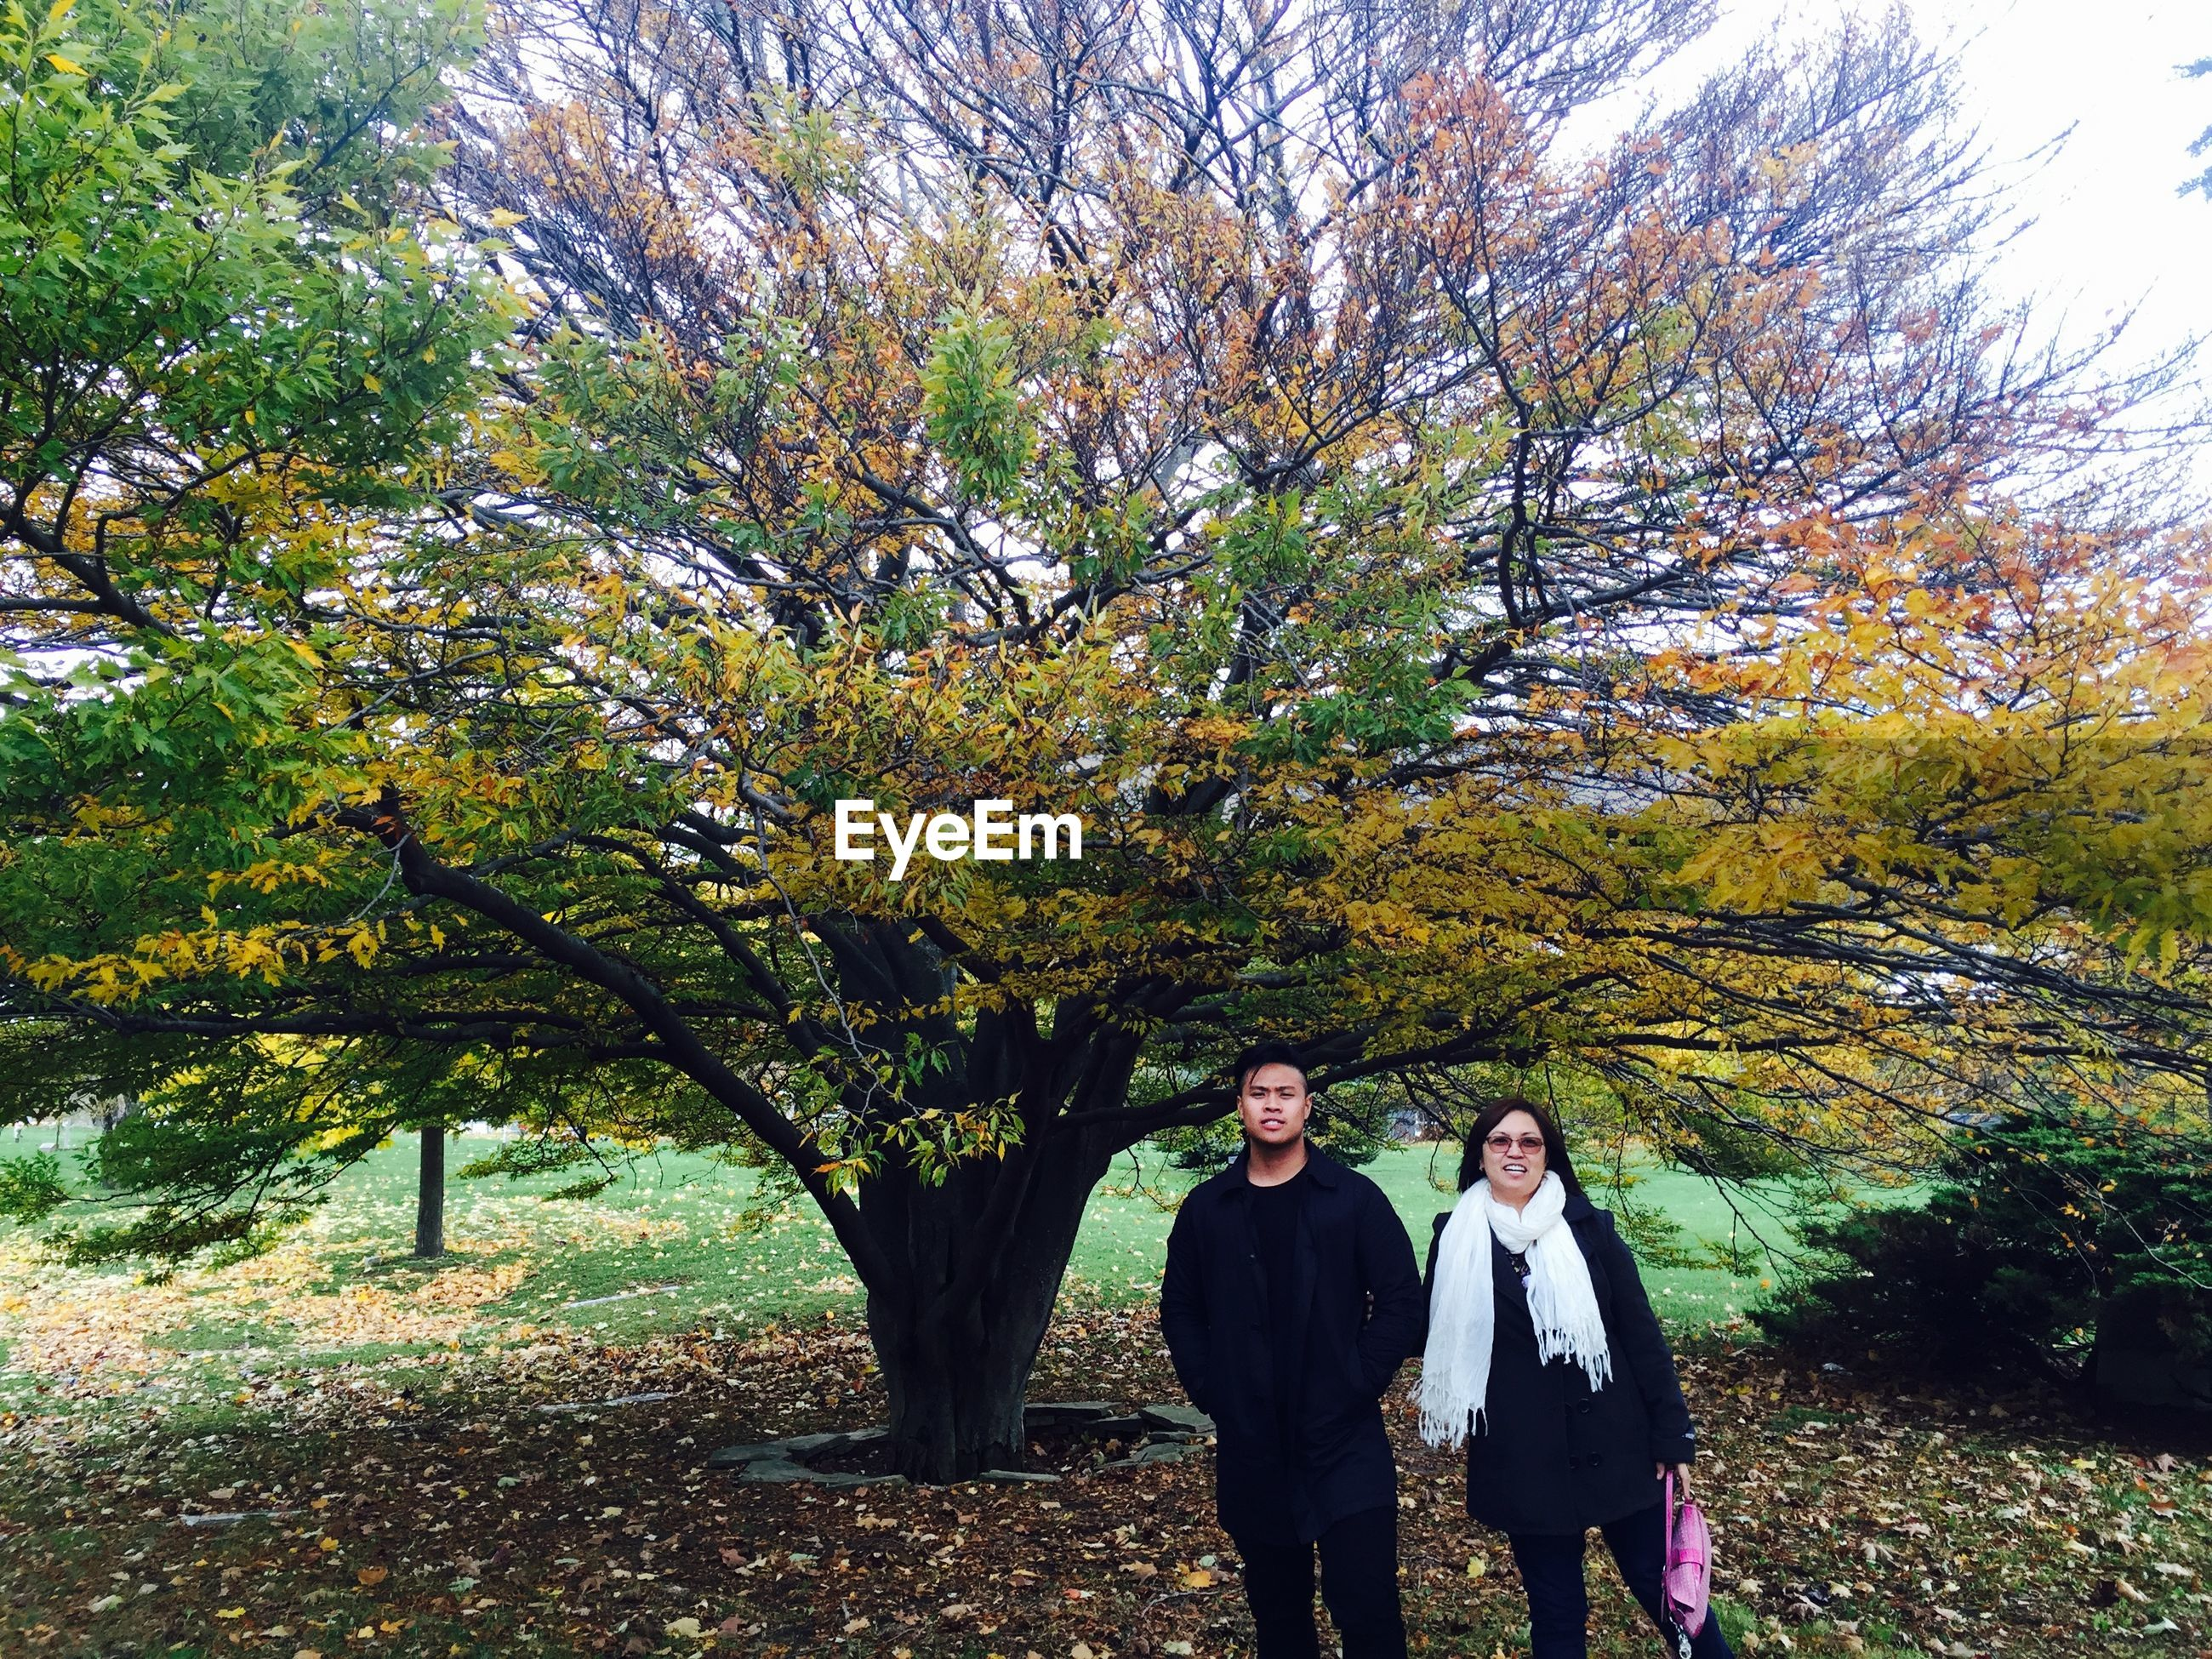 tree, lifestyles, leisure activity, rear view, casual clothing, autumn, person, standing, growth, men, togetherness, nature, walking, bonding, branch, change, park - man made space